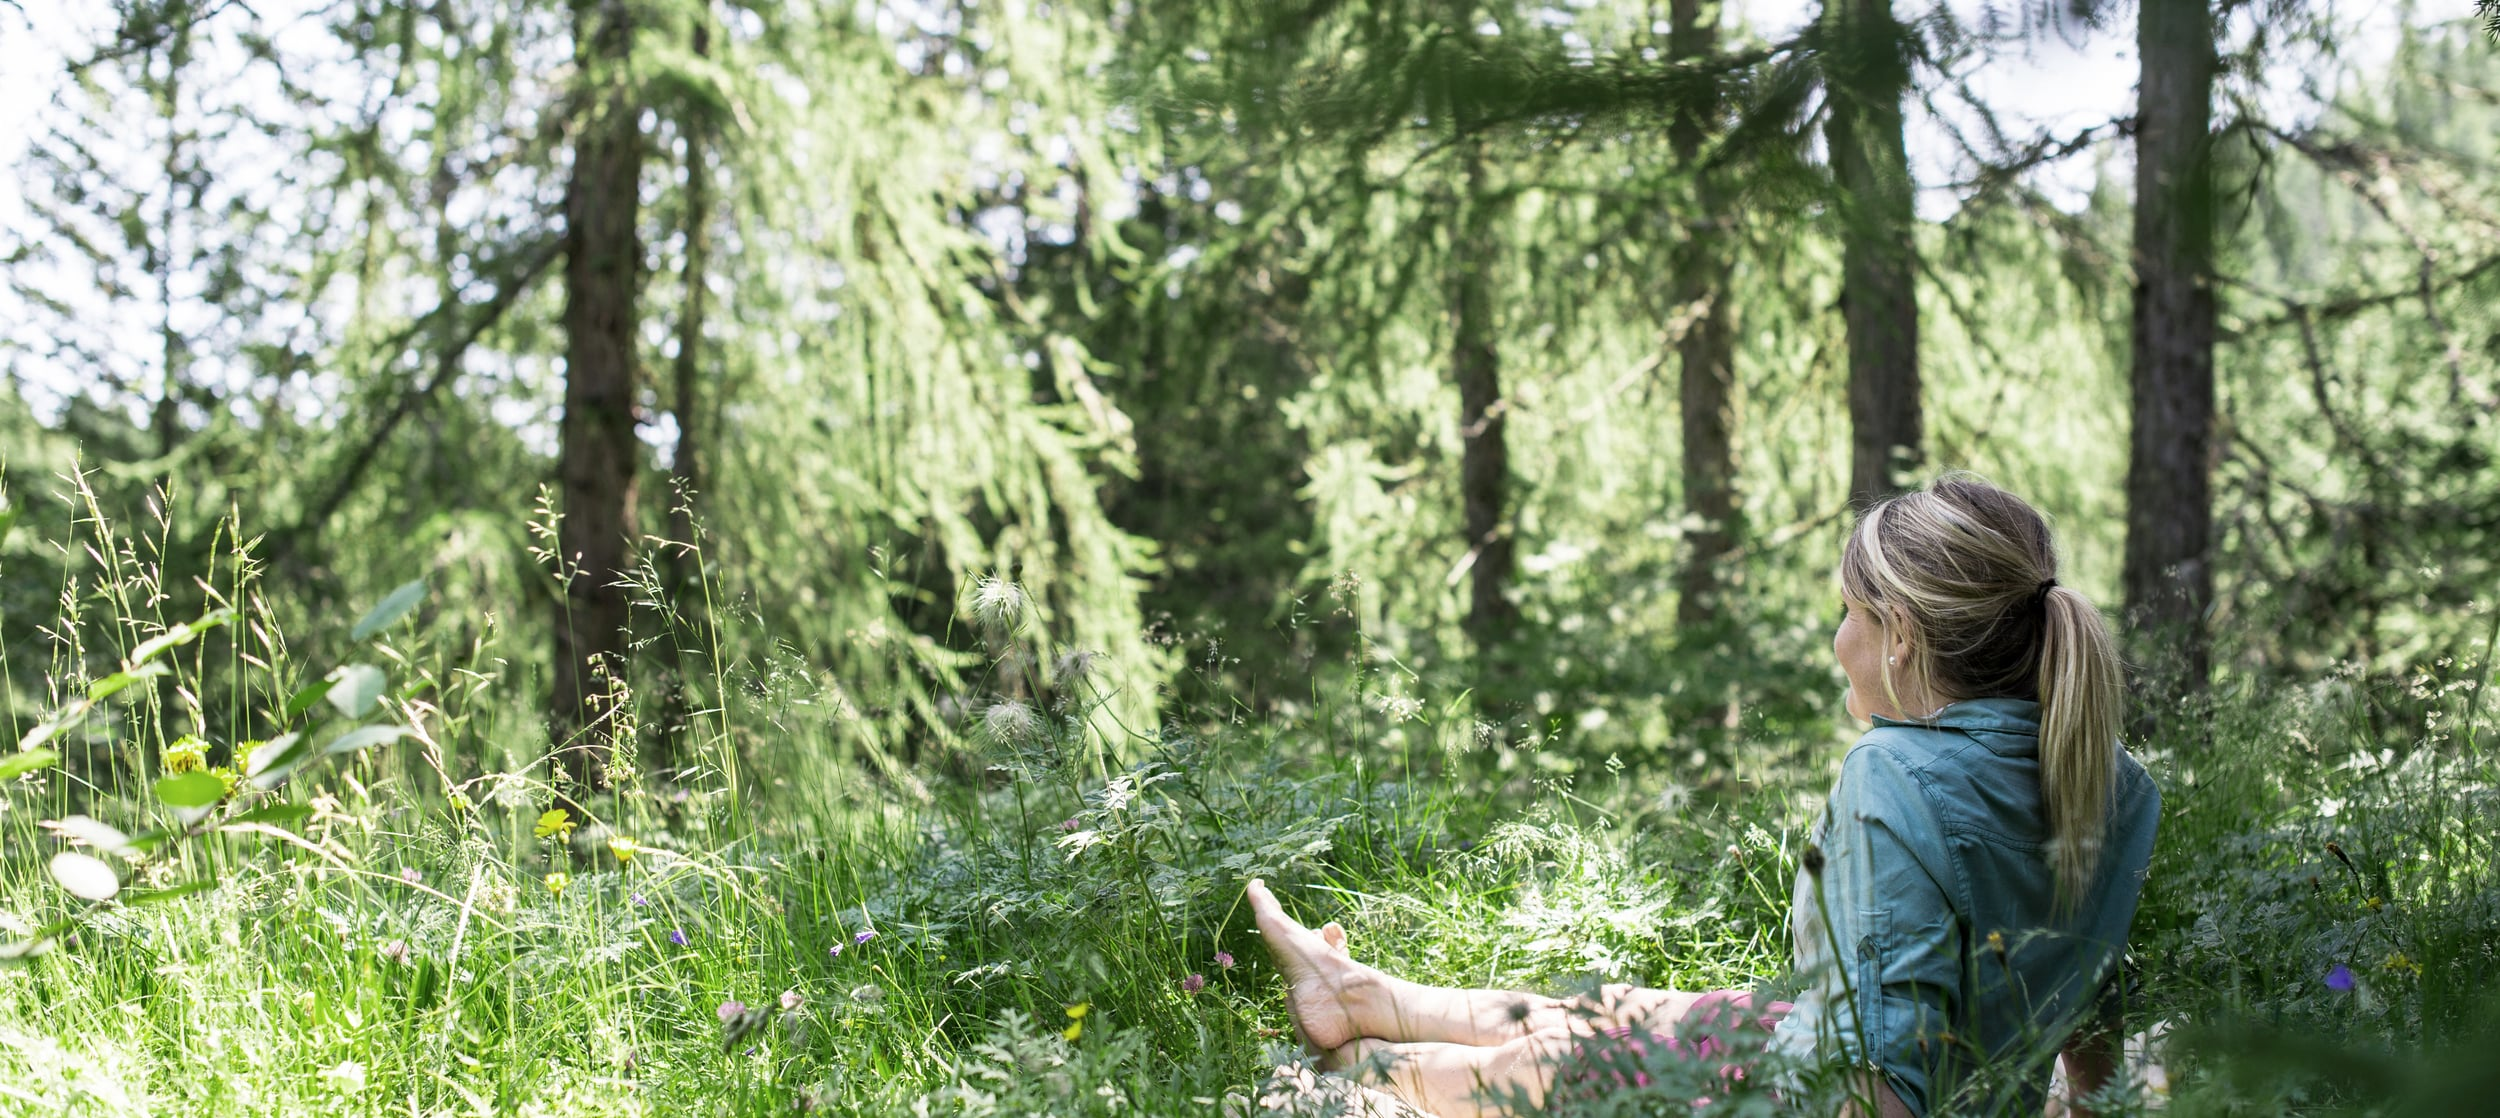 Wellbeing tips for when you're at home